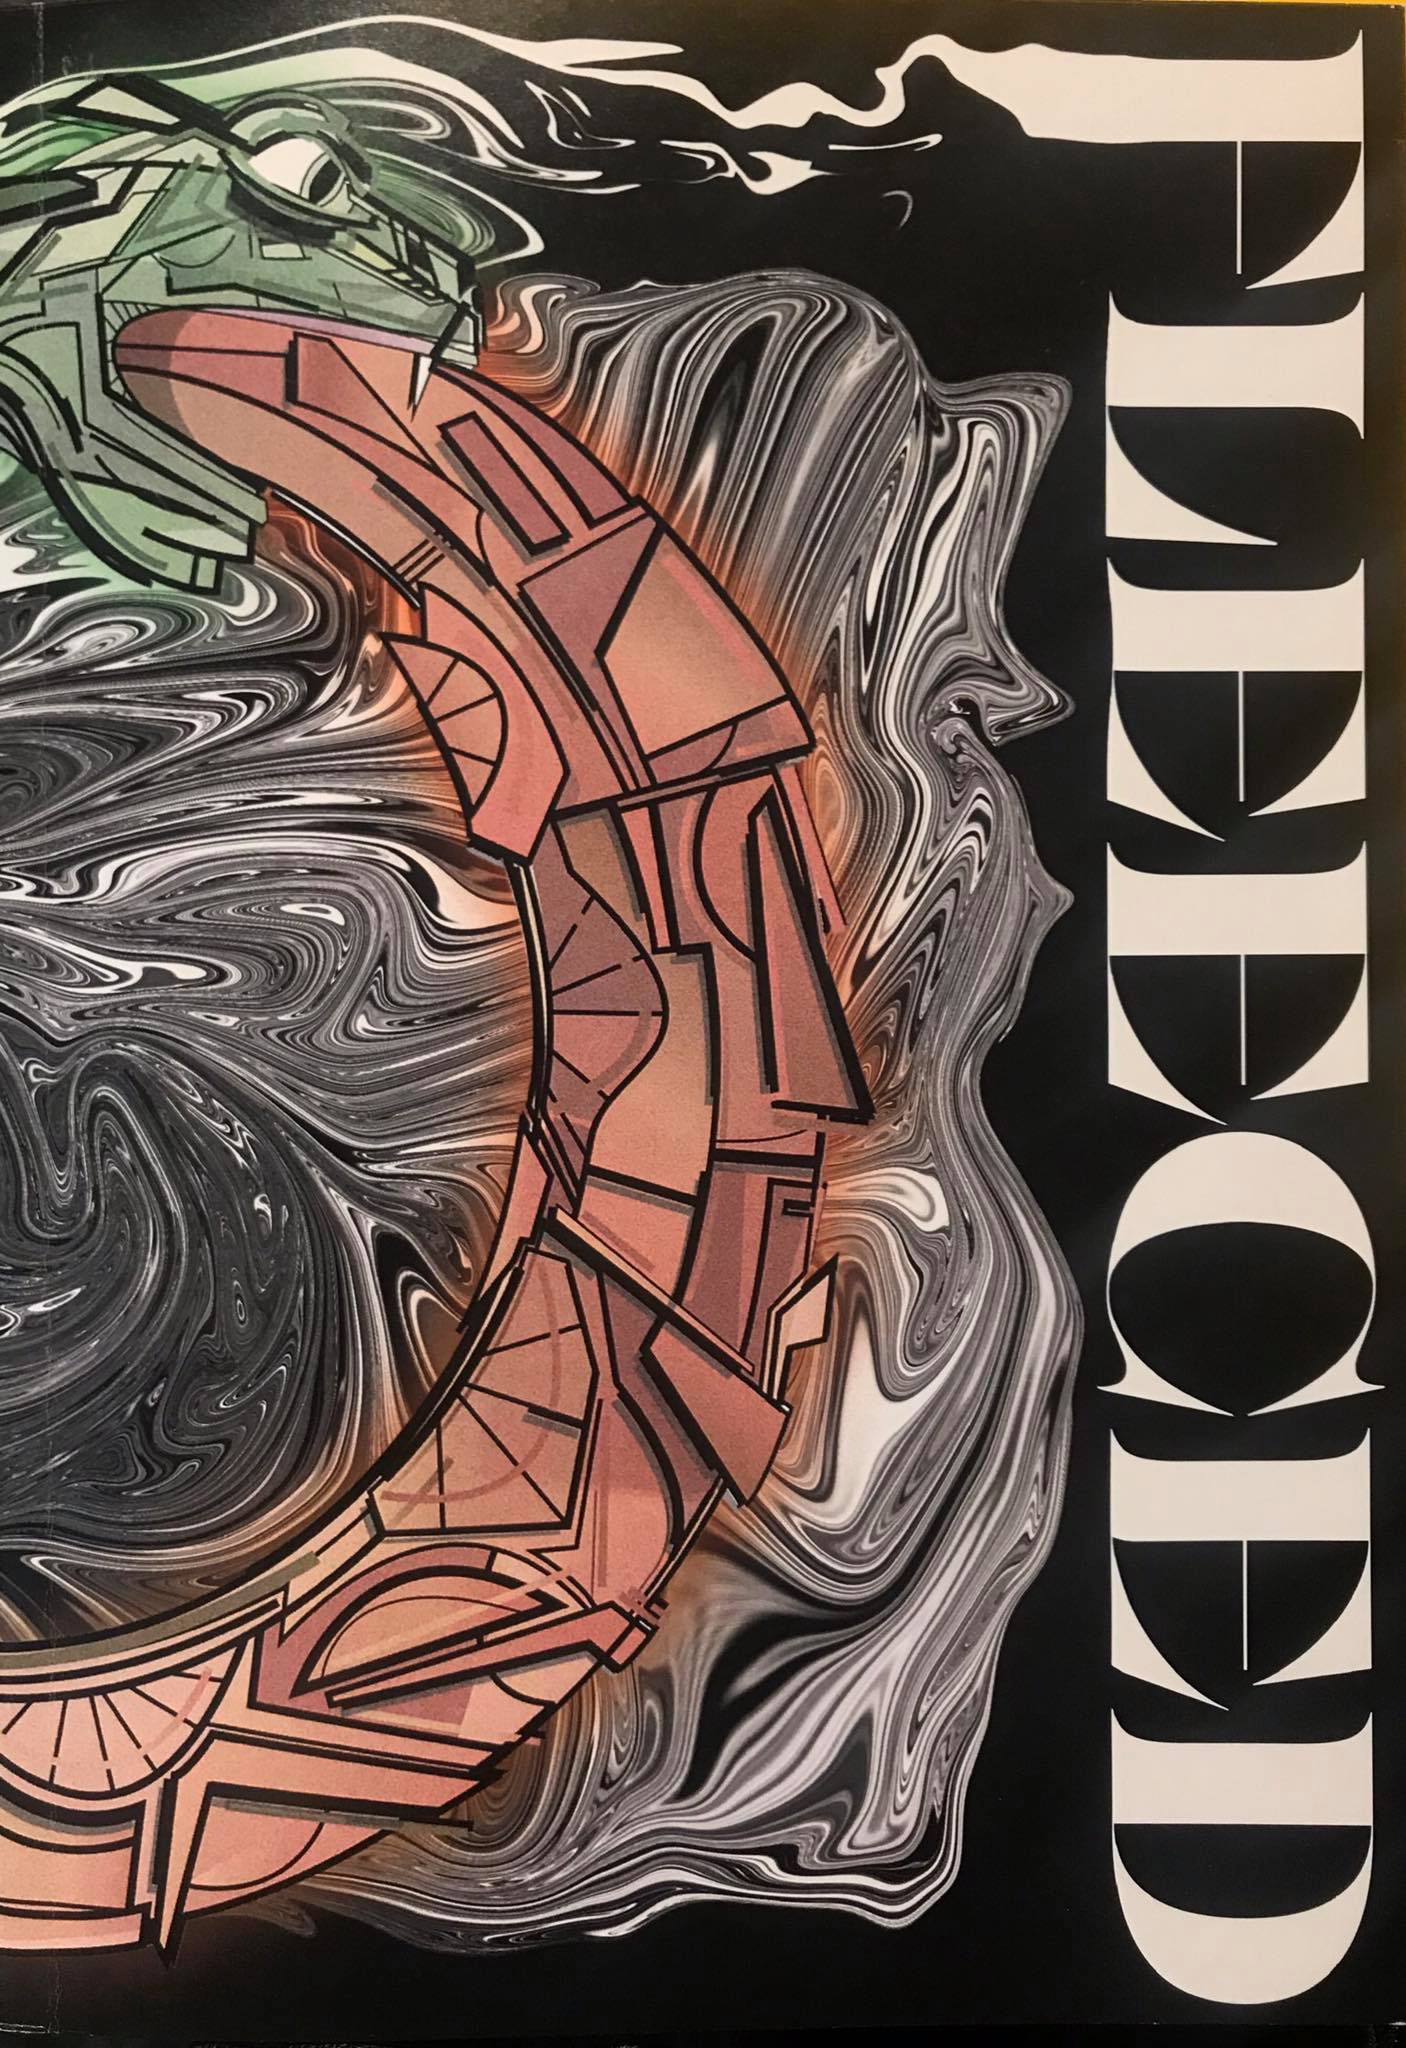 Fleeced Magazine issue 1 - The Library Project